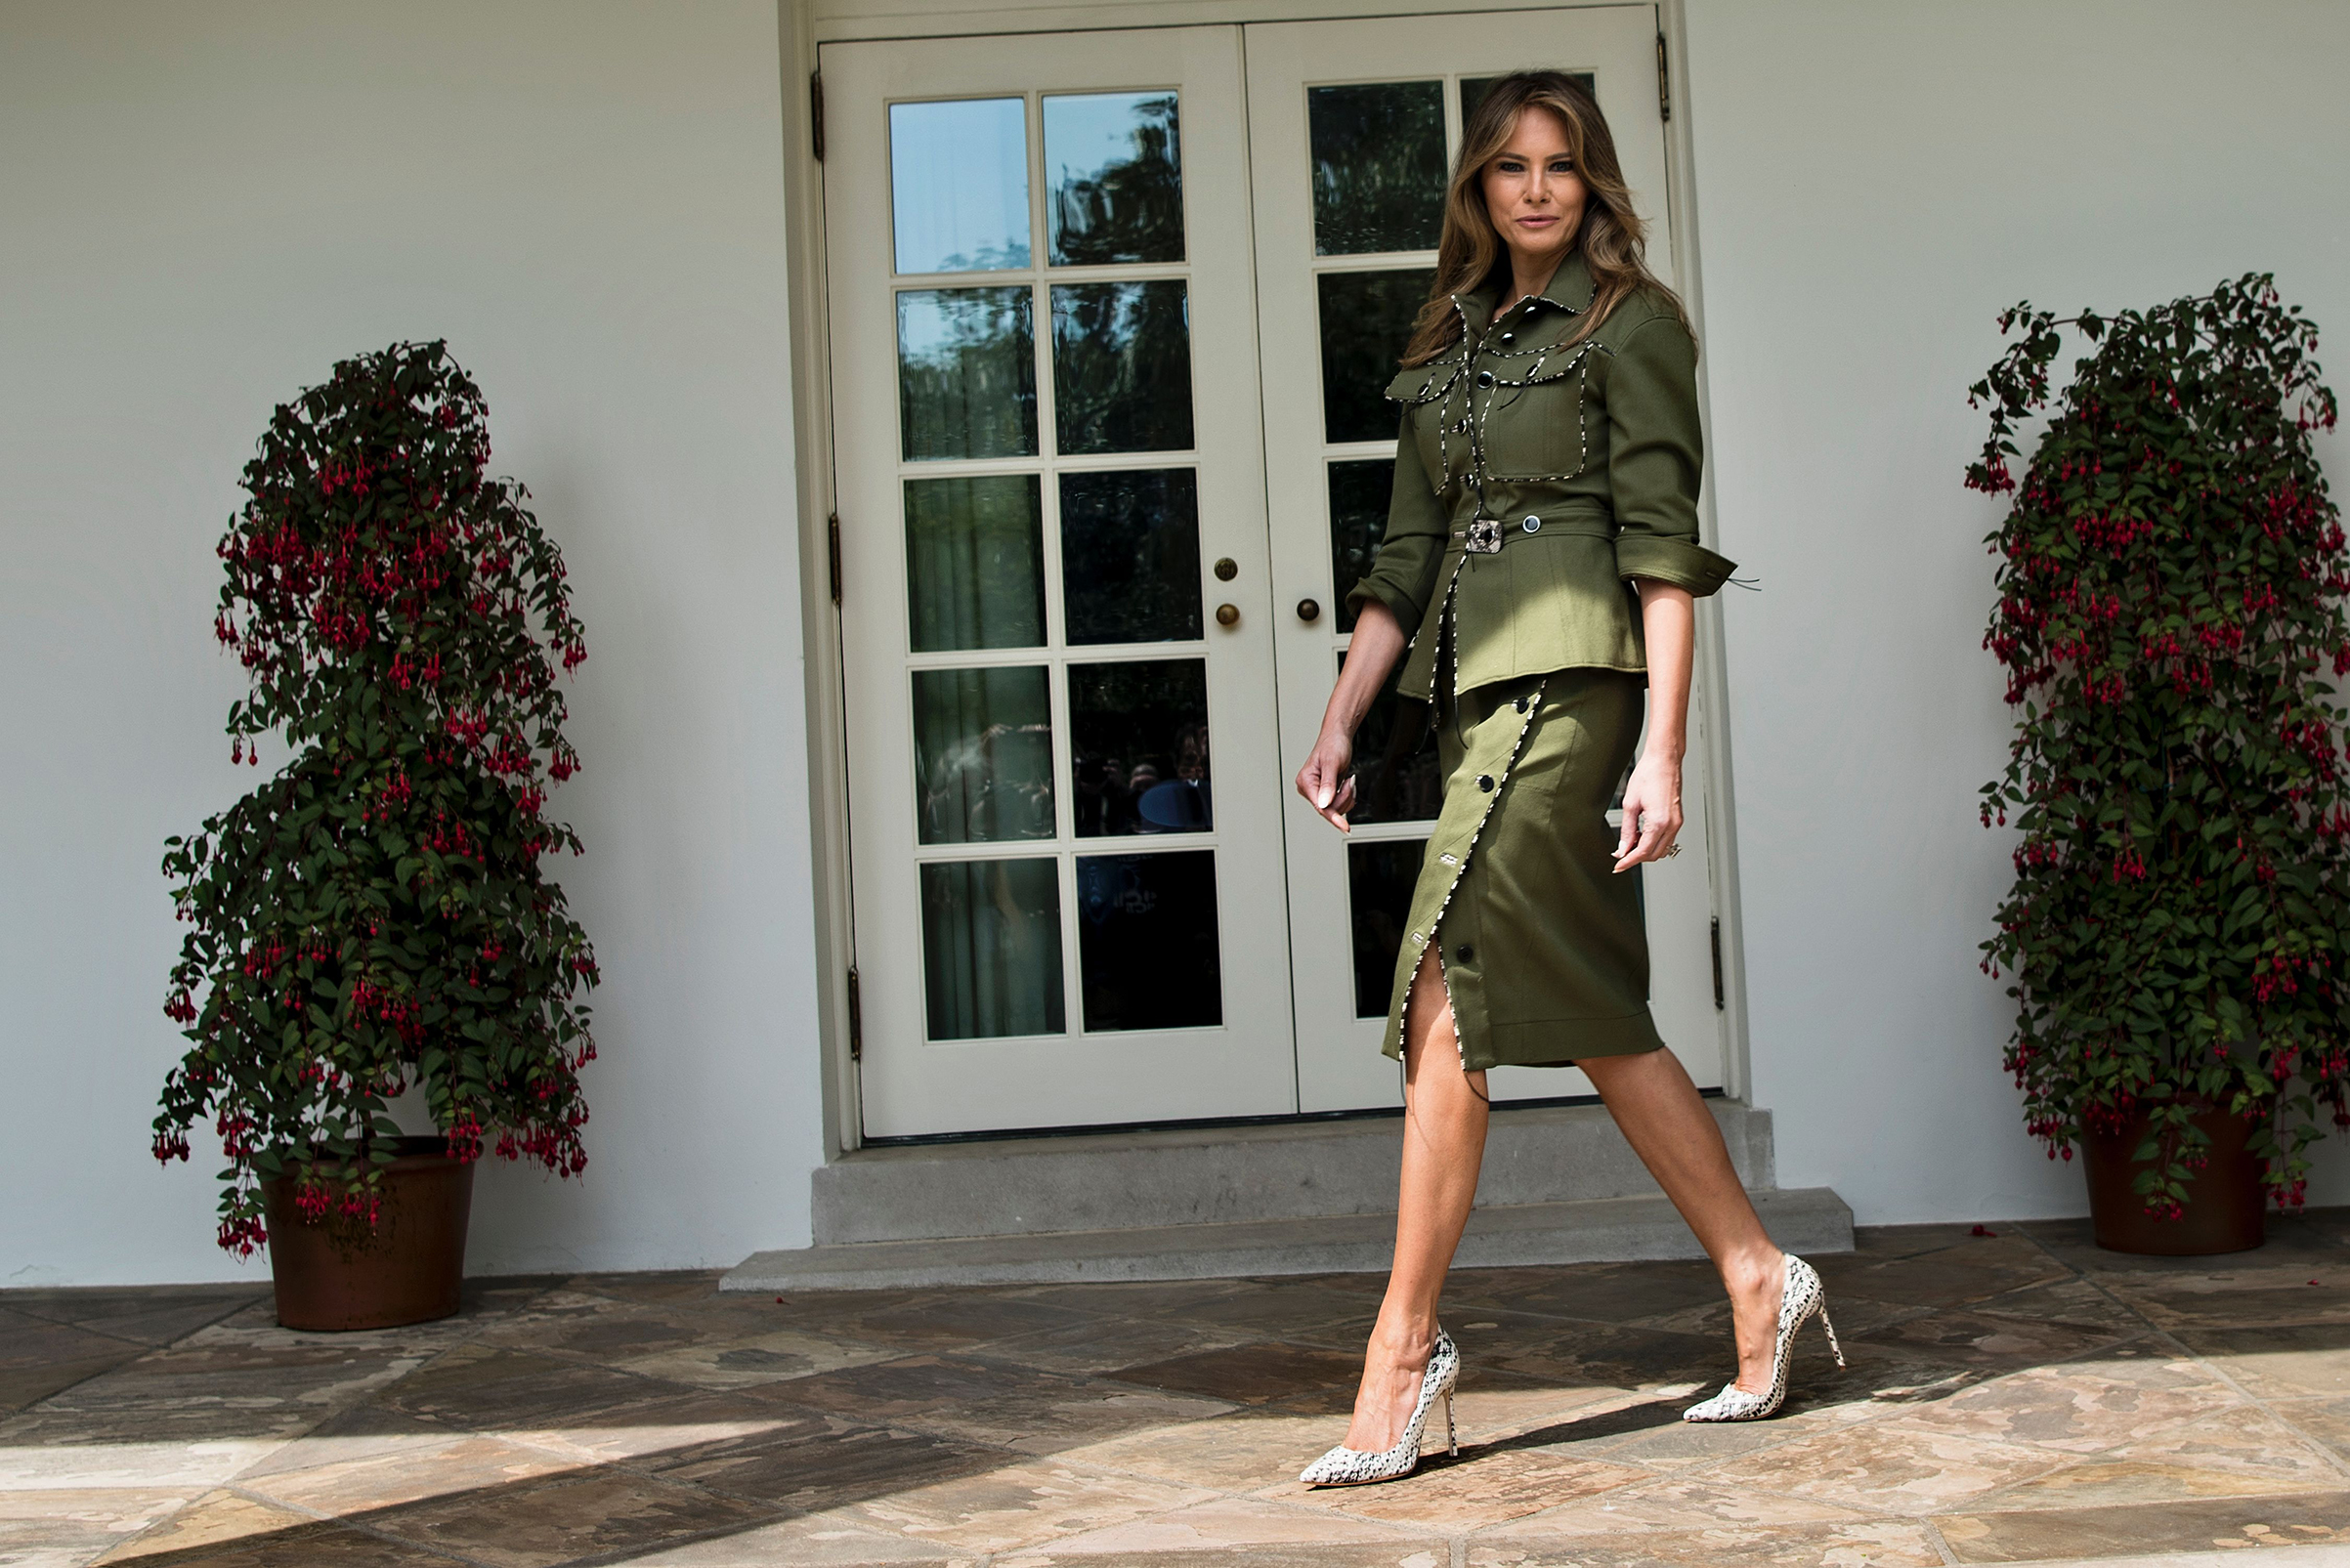 First lady Melania Trump wearing a khaki green, military-look suit by Altuzarra walks past the West Wing of the White House April 27, 2017.